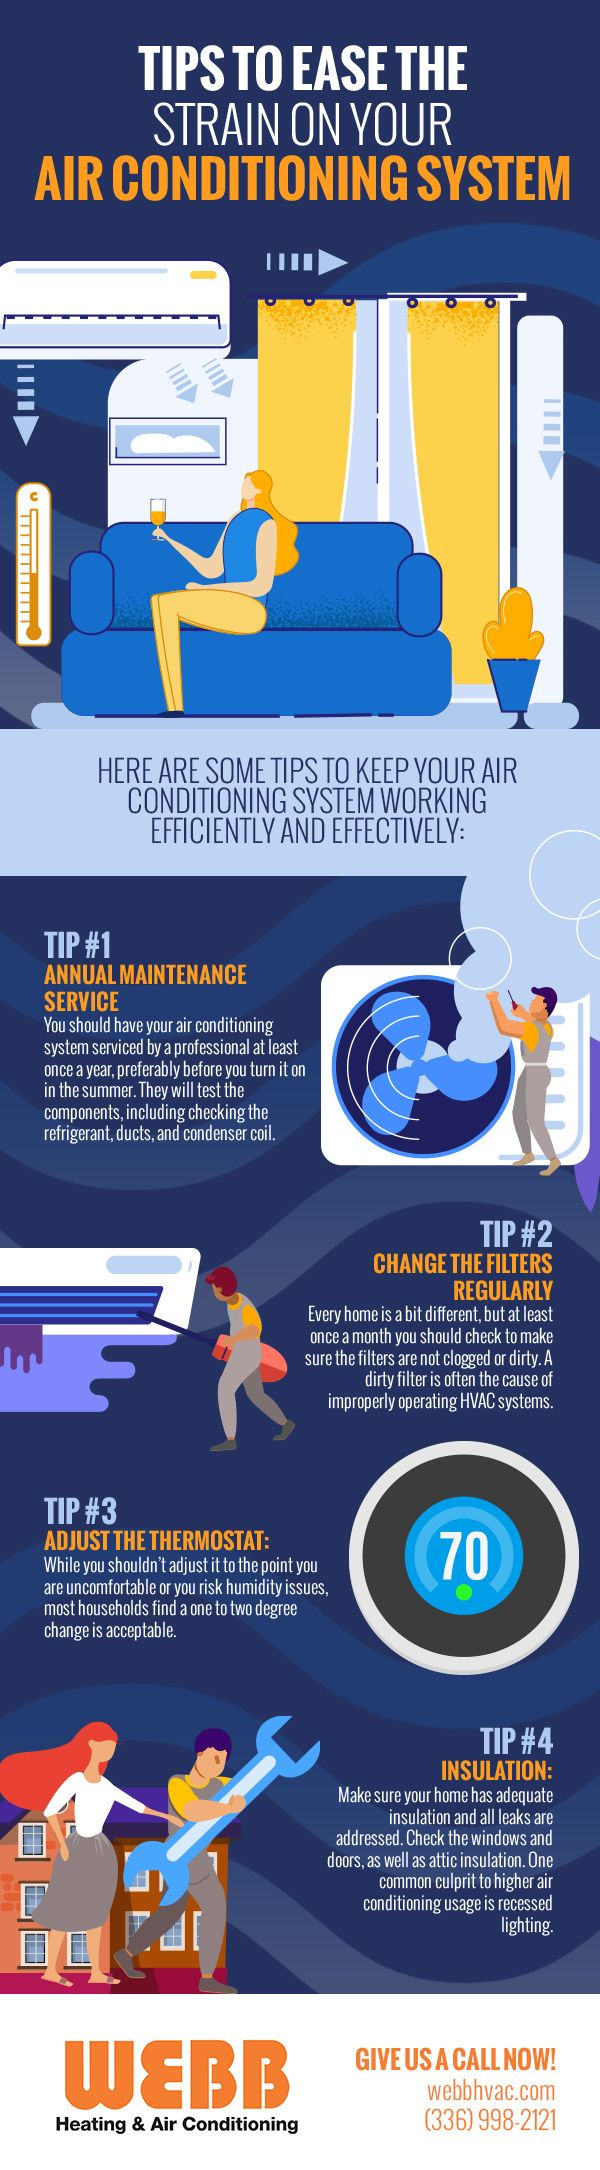 Tips to Ease the Strain on Your Air Conditioning System